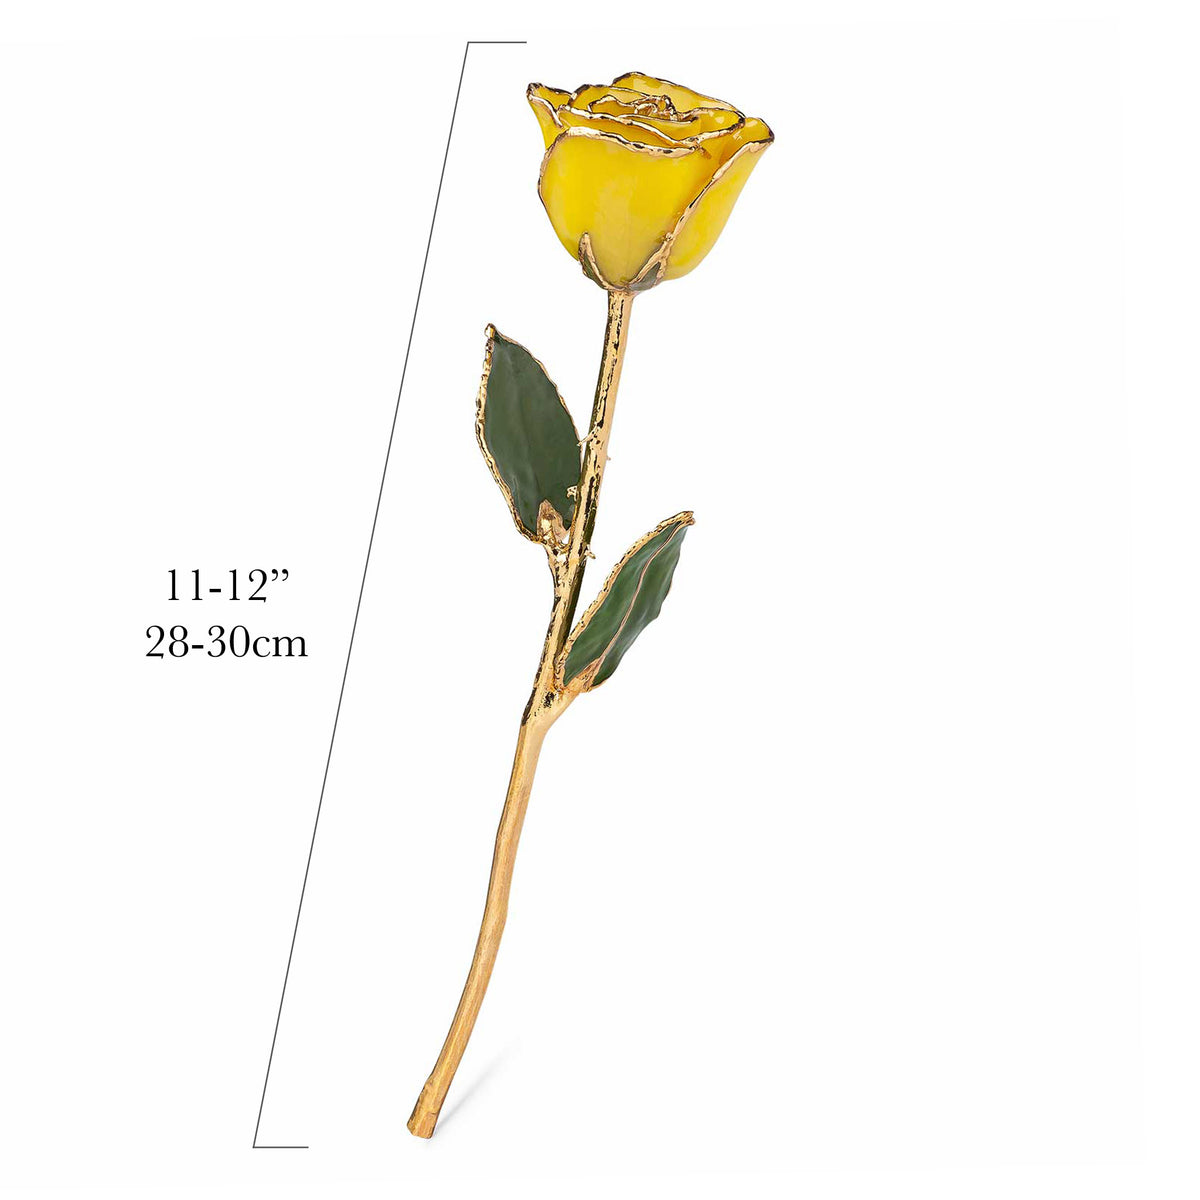 24K Gold Trimmed Forever Rose with Yellow Petals. View of Stem, Leaves, and Rose Petals and Showing Detail of Gold Trim. Measurements of rose shown.